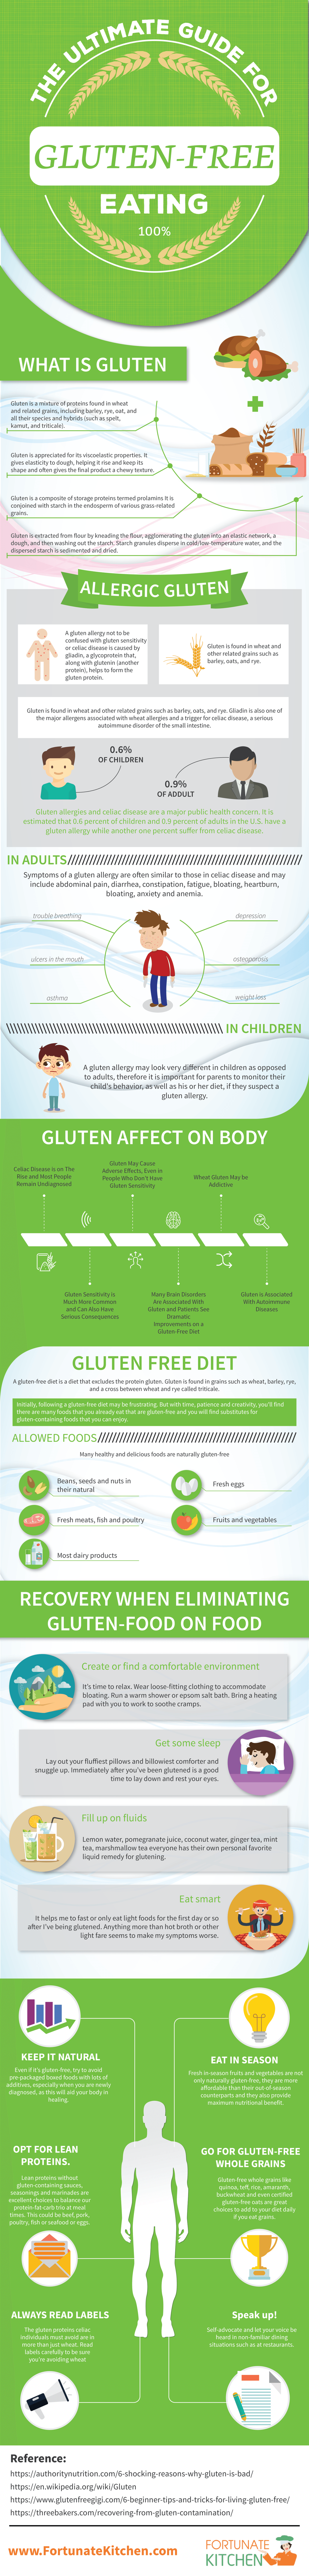 How To Eat Completely Gluten Free! - Infographic